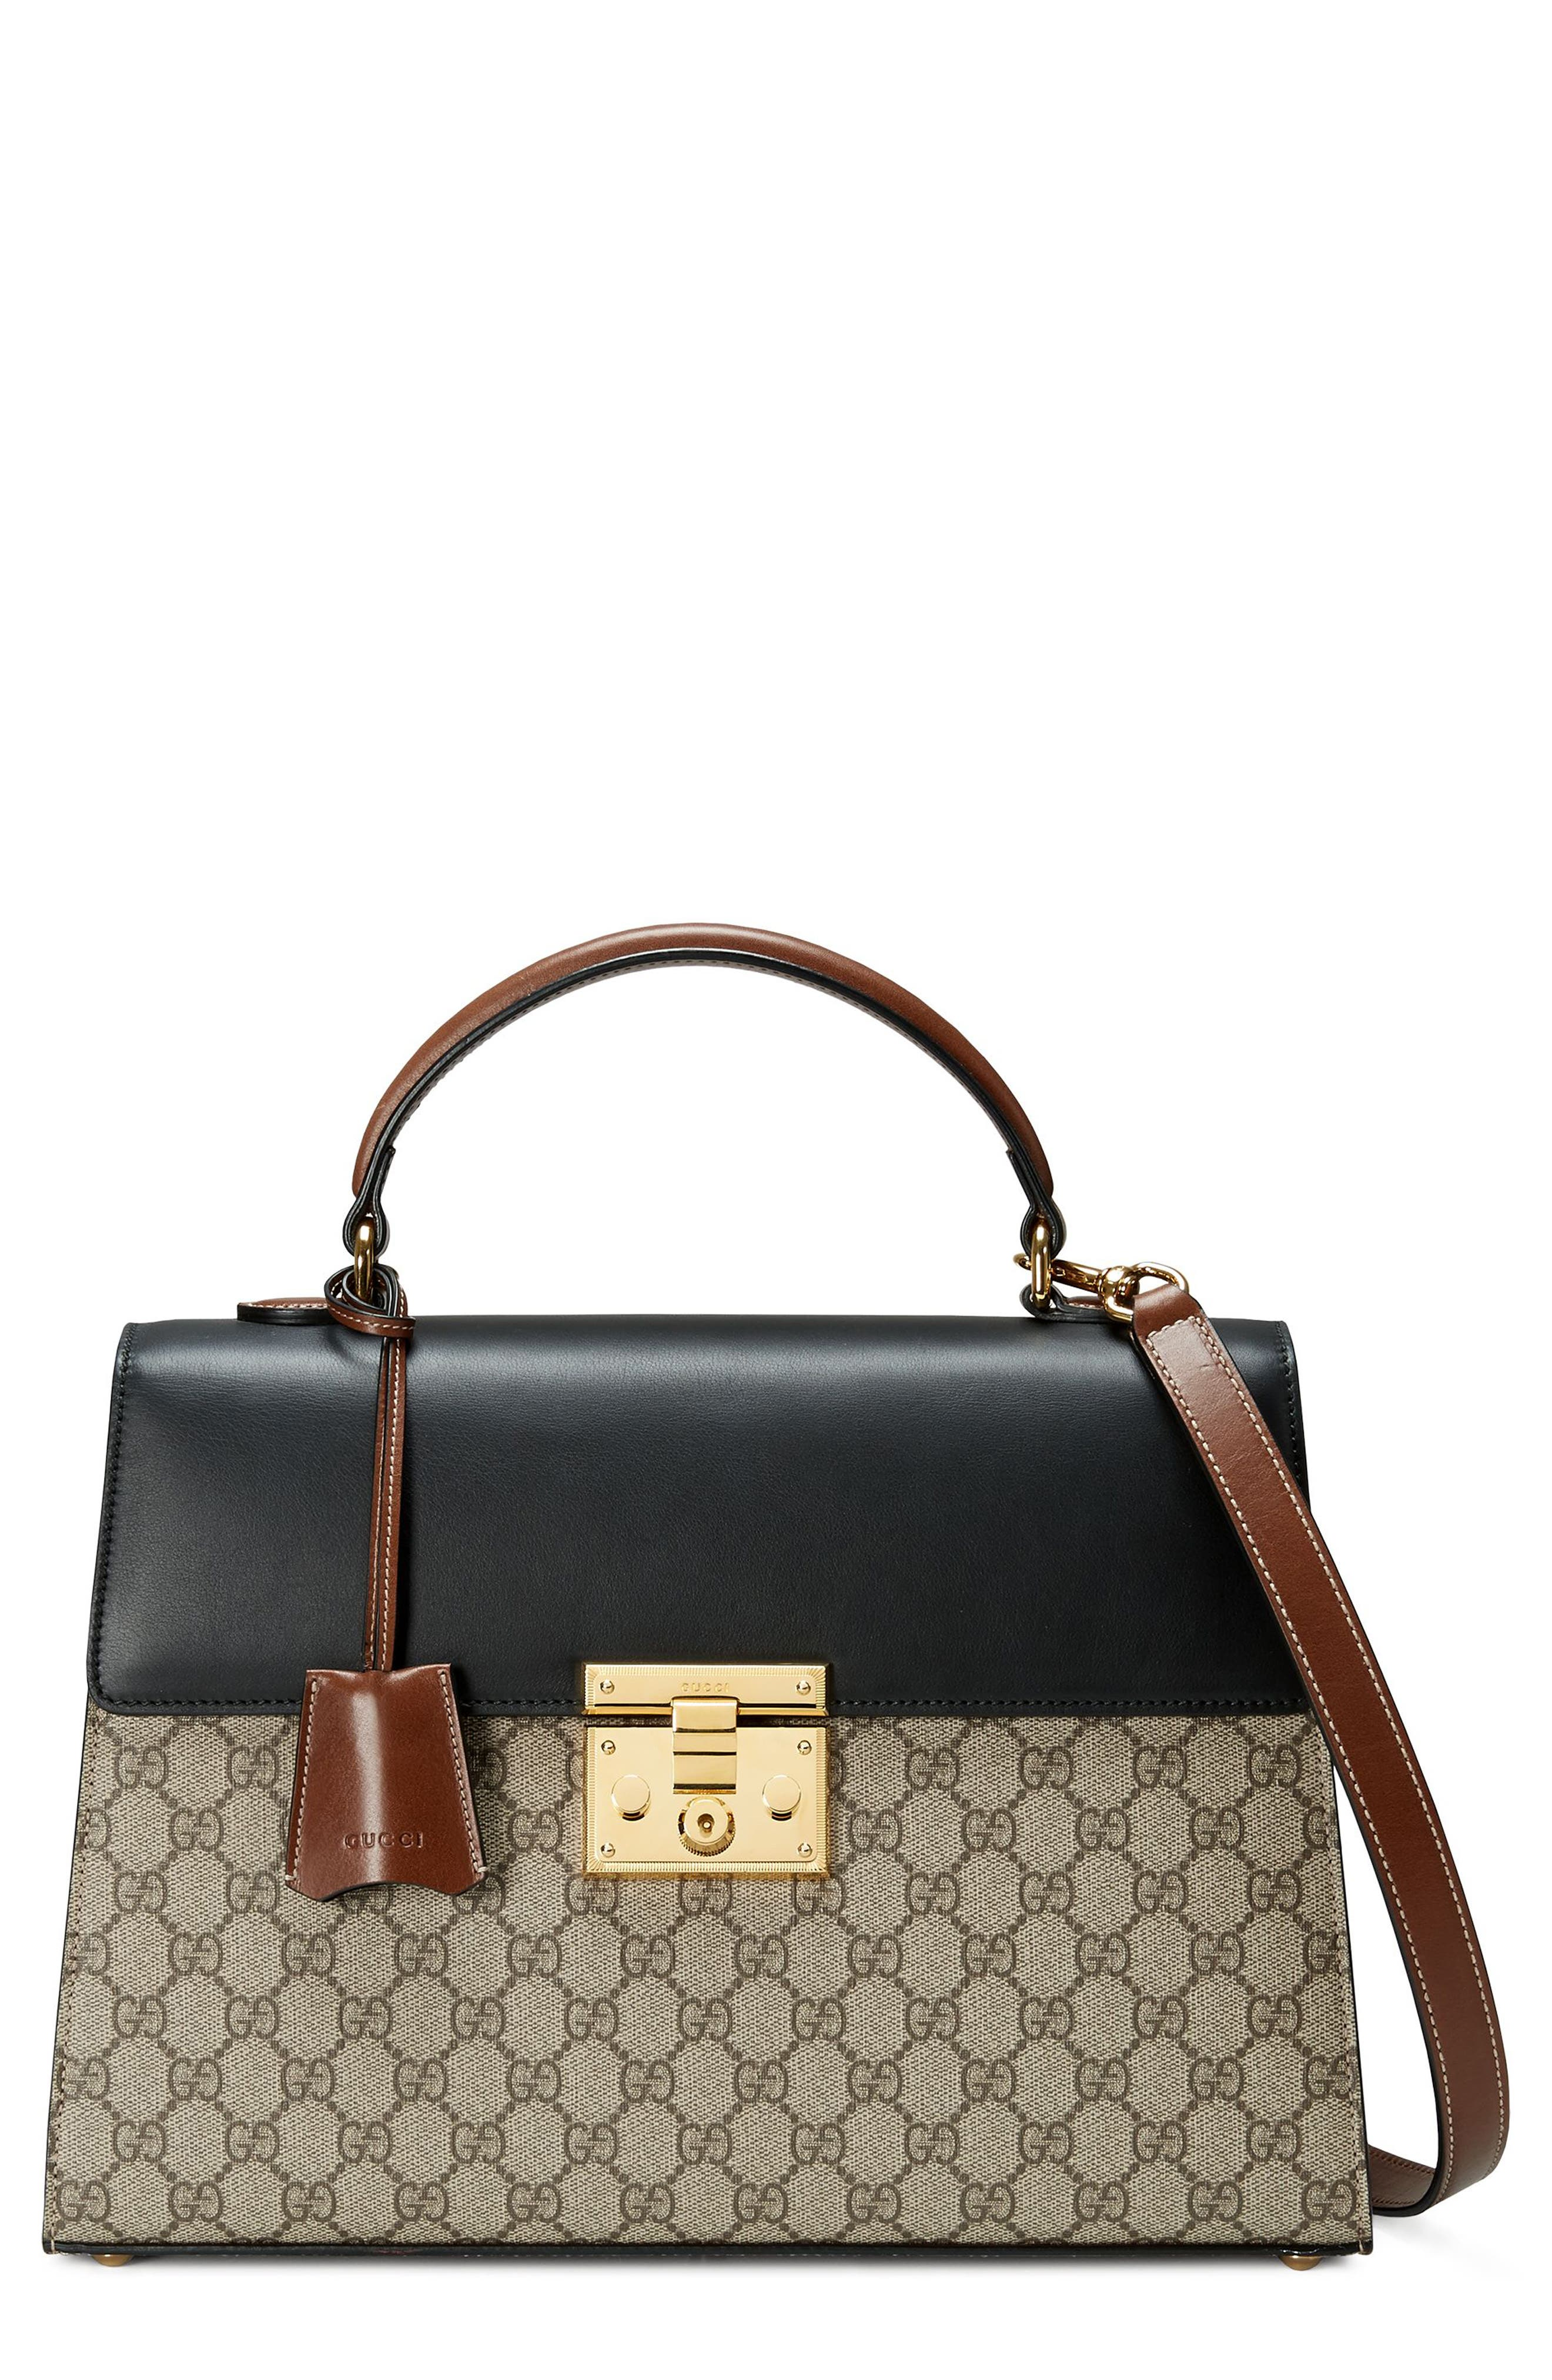 Gucci Medium Padlock Top Handle GG Supreme Canvas & Leather Bag